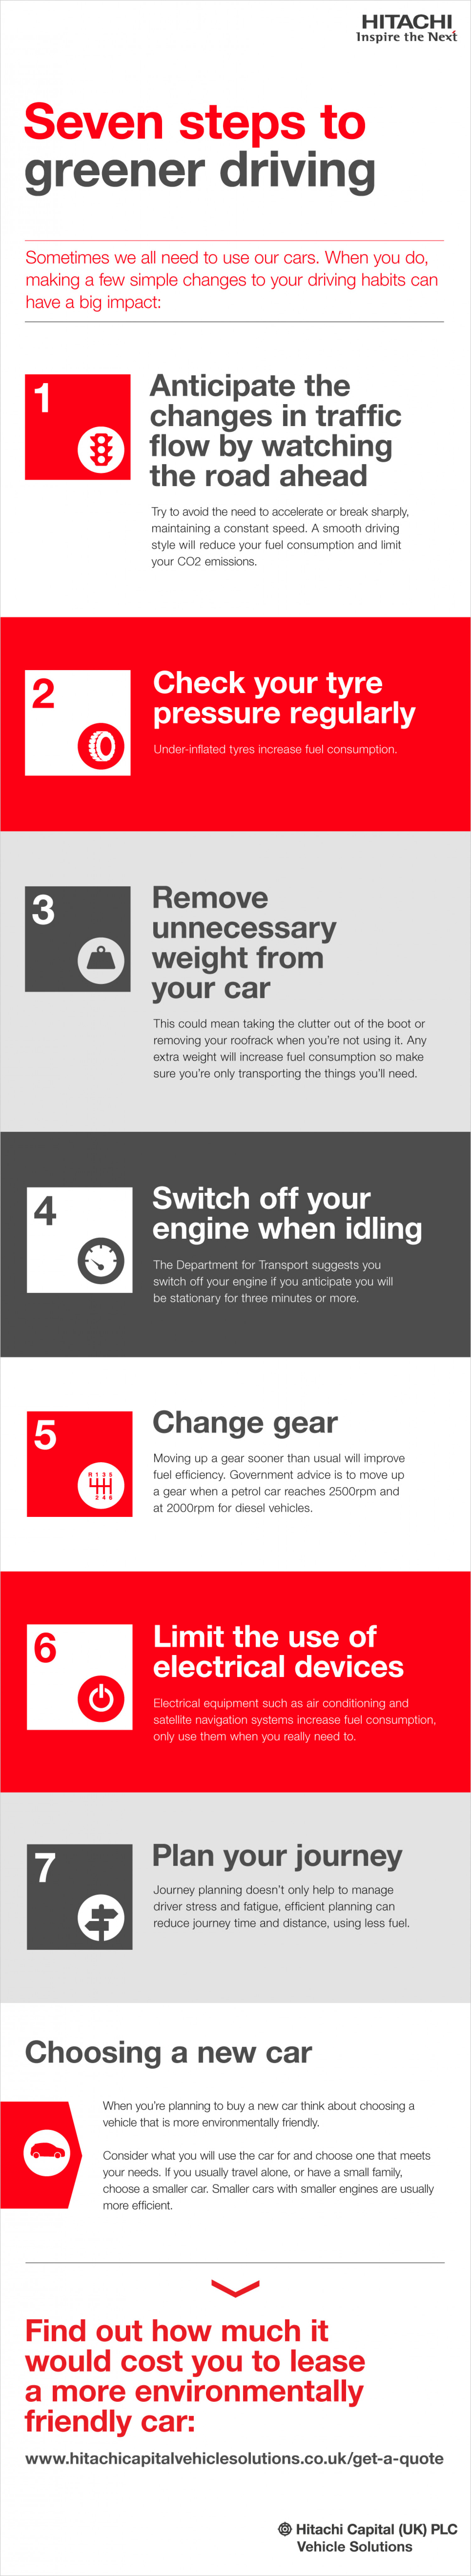 7 Steps to Greener Driving Infographic